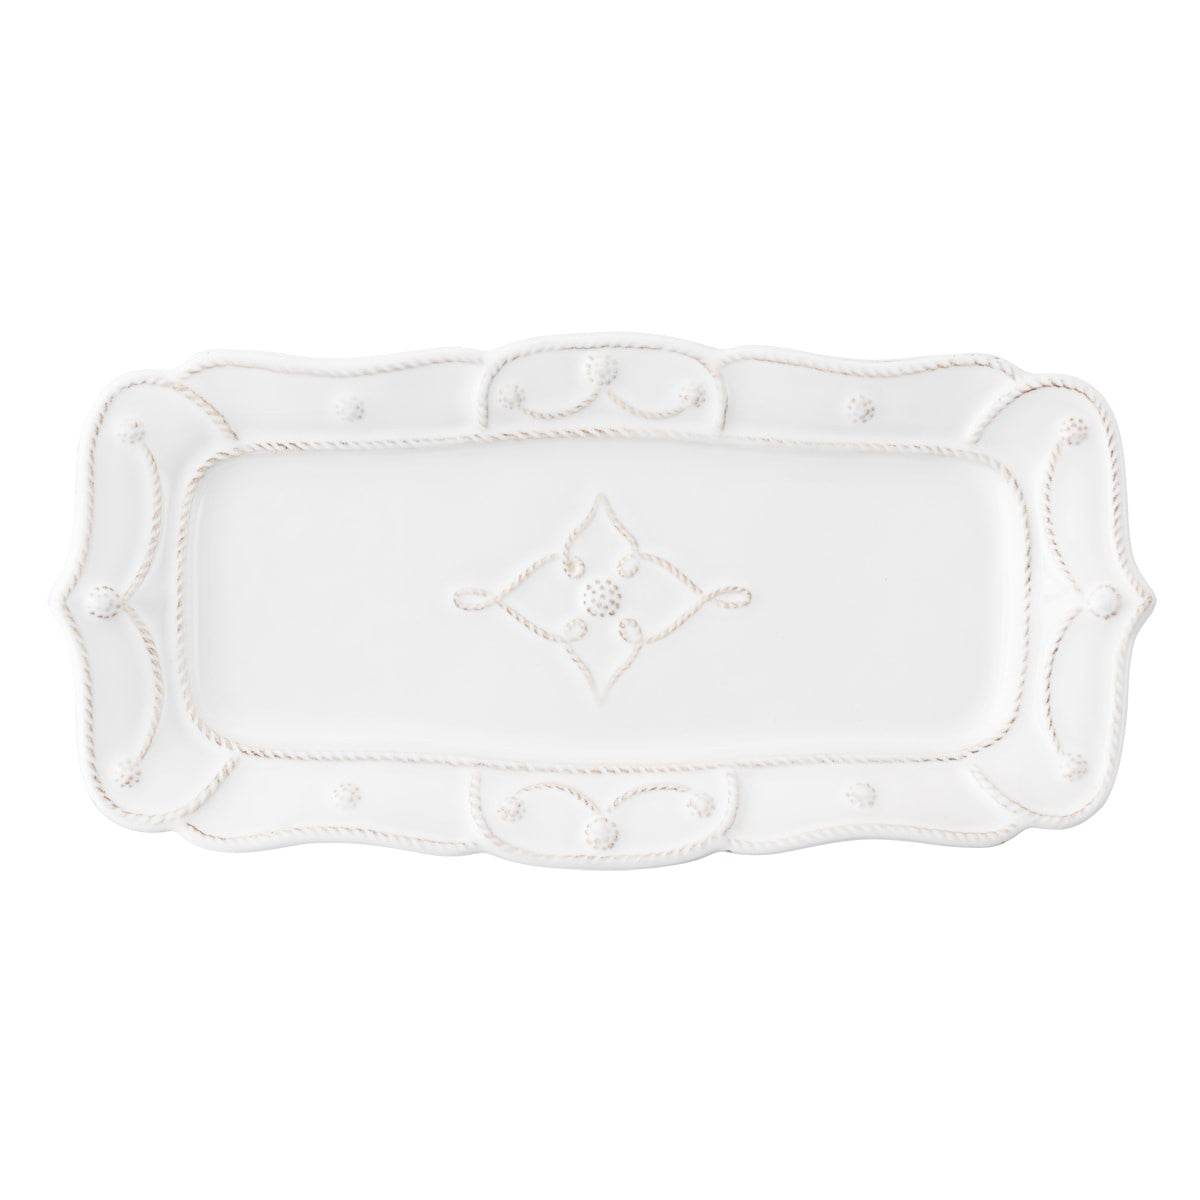 Jardins Hostess Tray